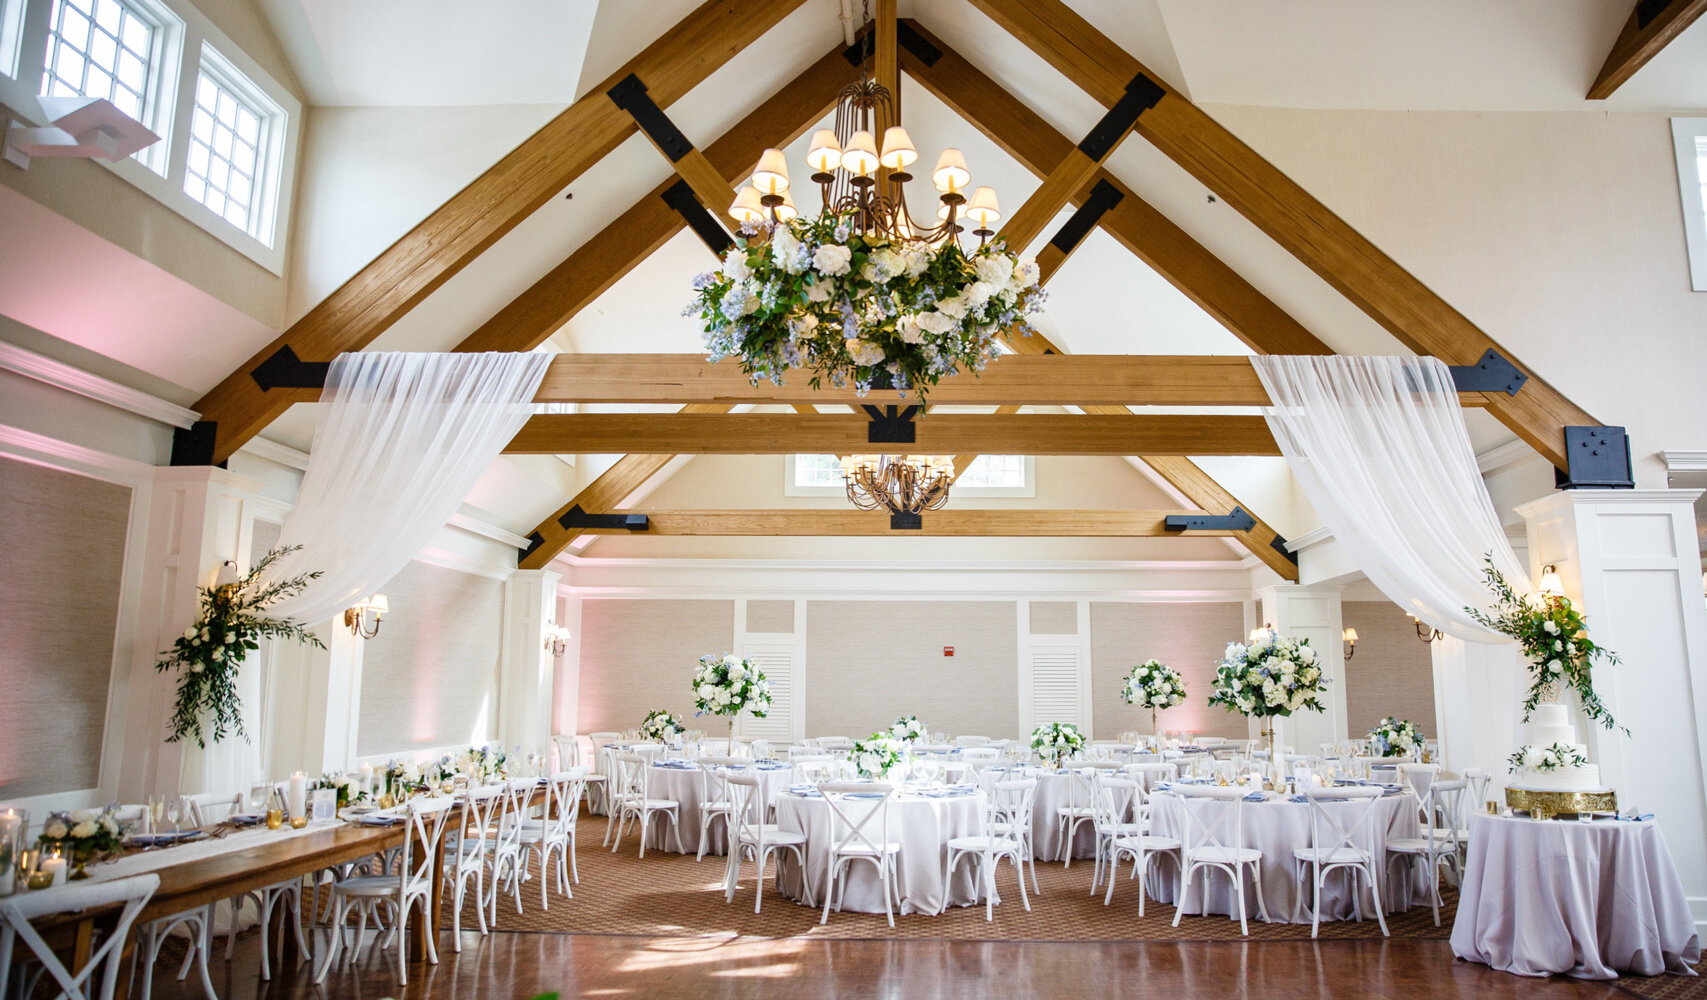 Pinehills-Pavilion-Wedding-Reception-Details.jpg